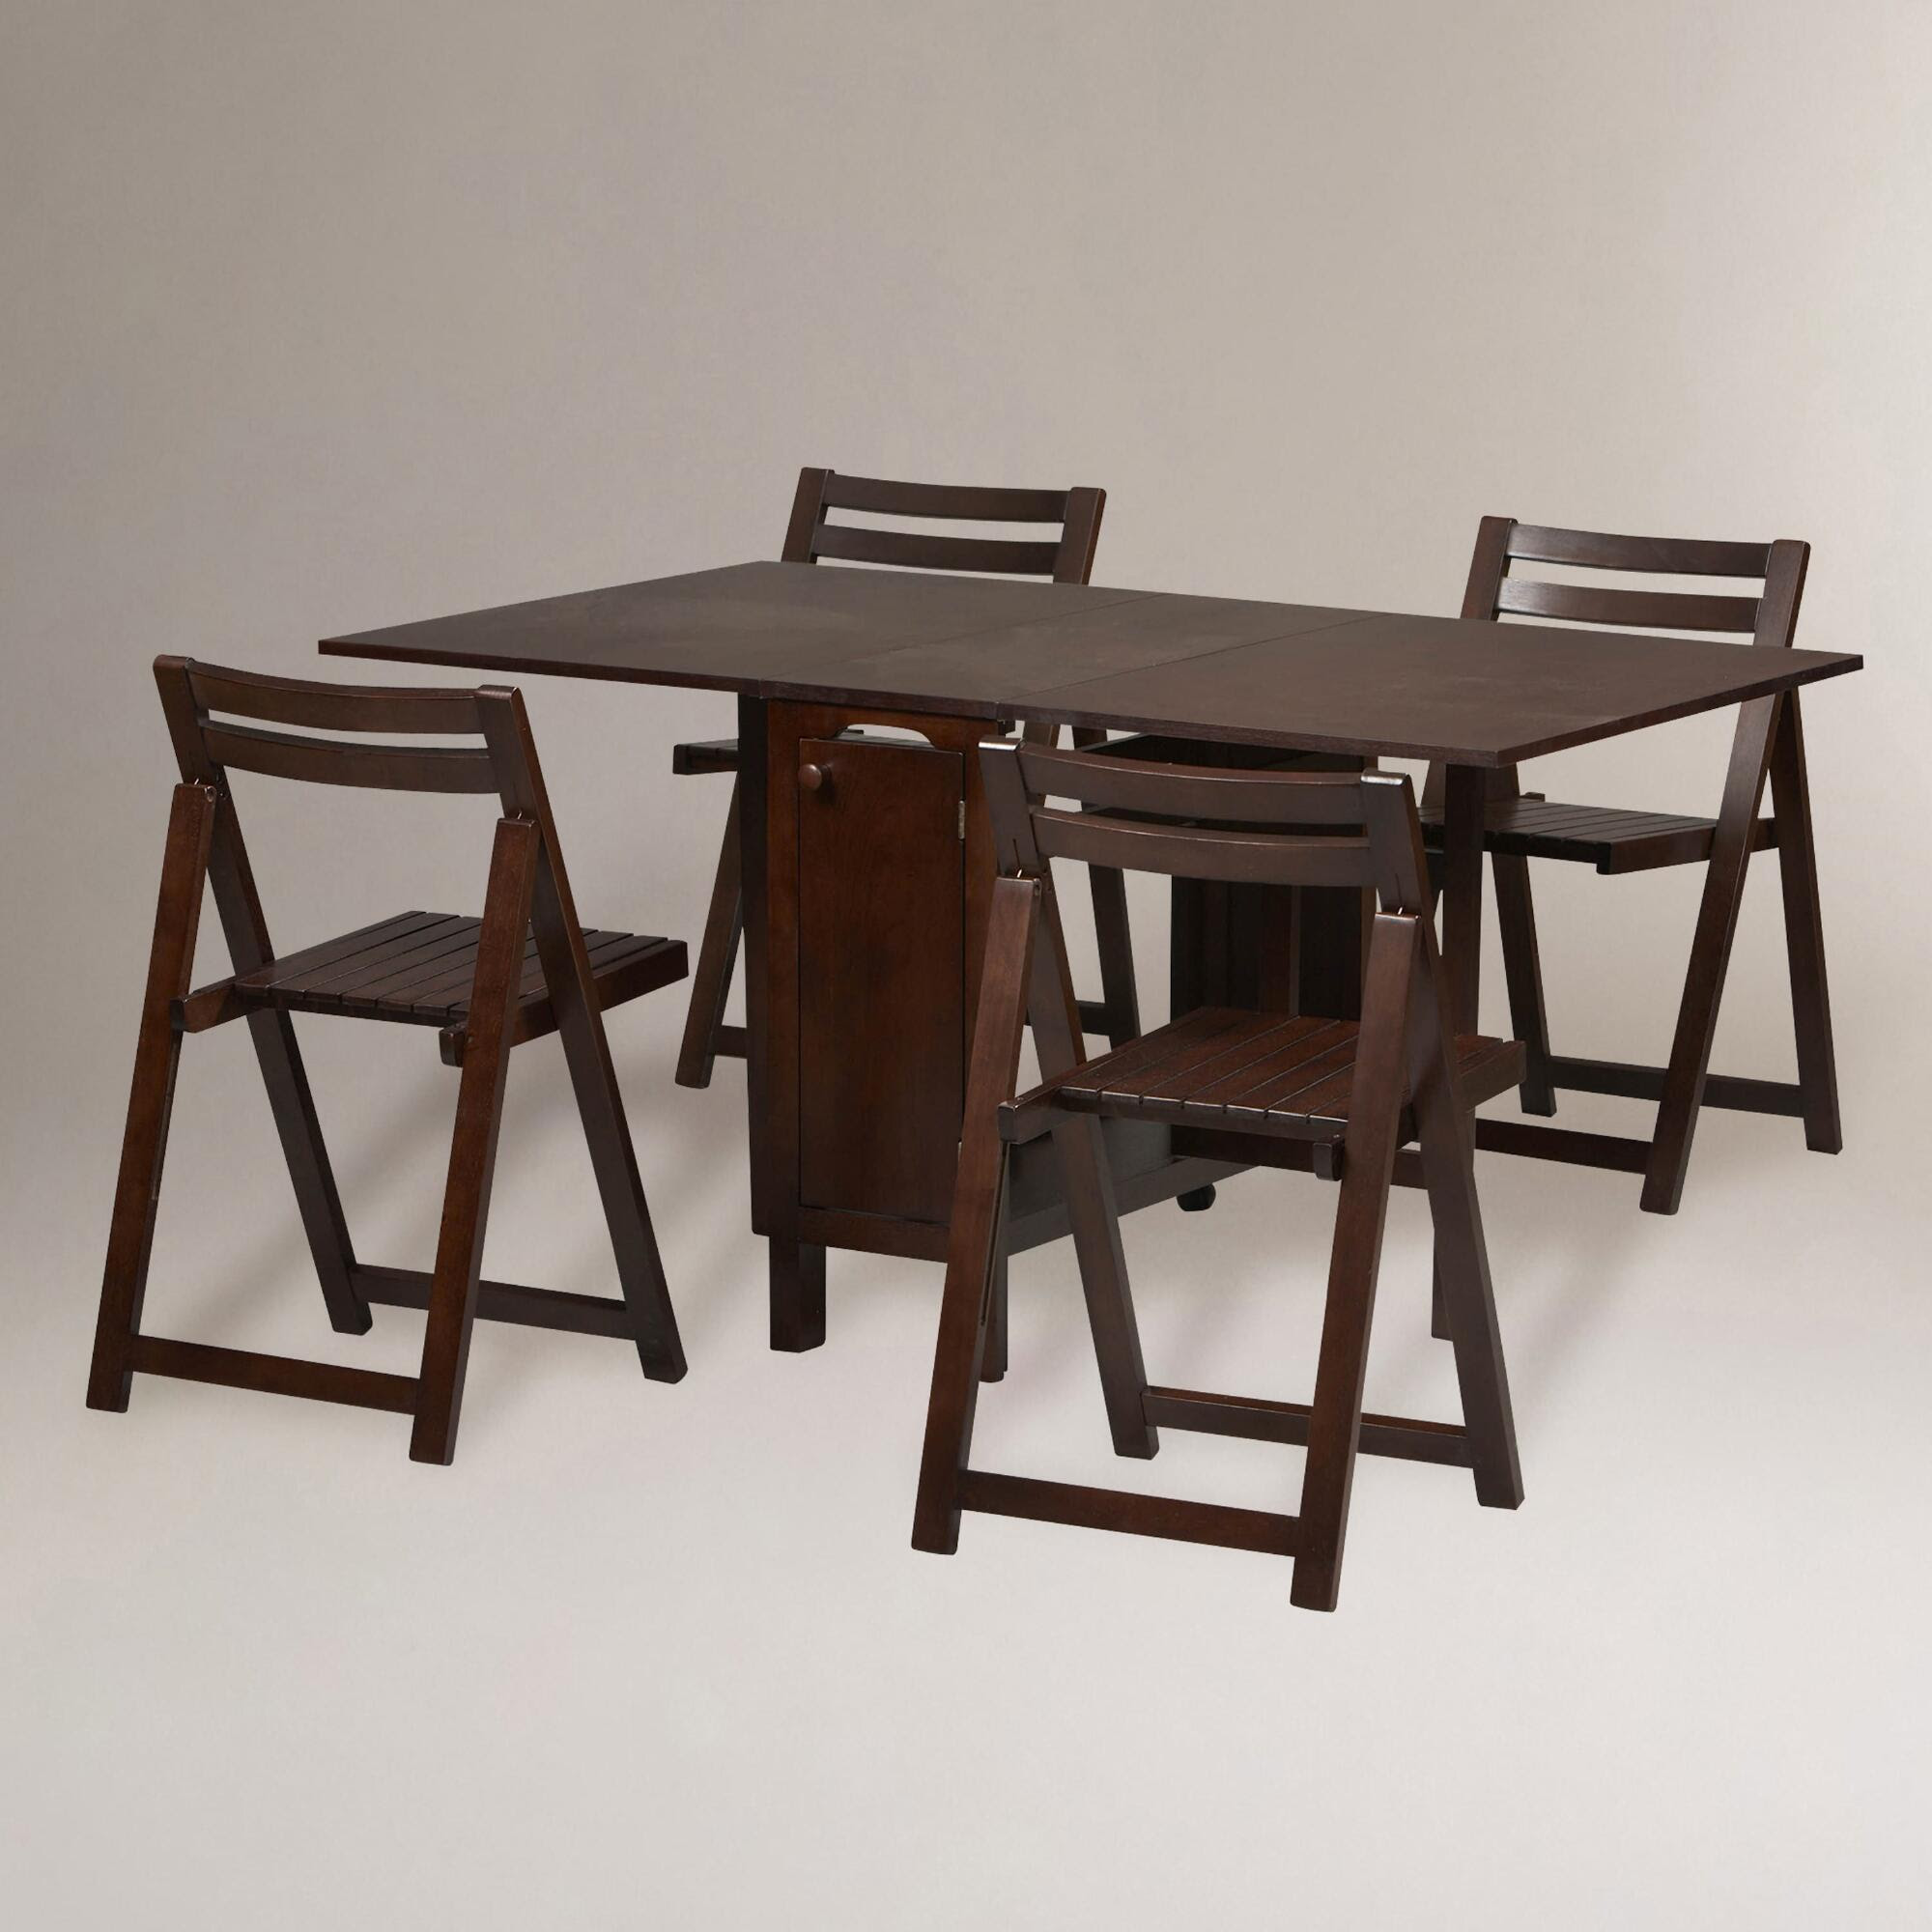 Wenge Lawson Space Saver Table & Chair Set | World Market